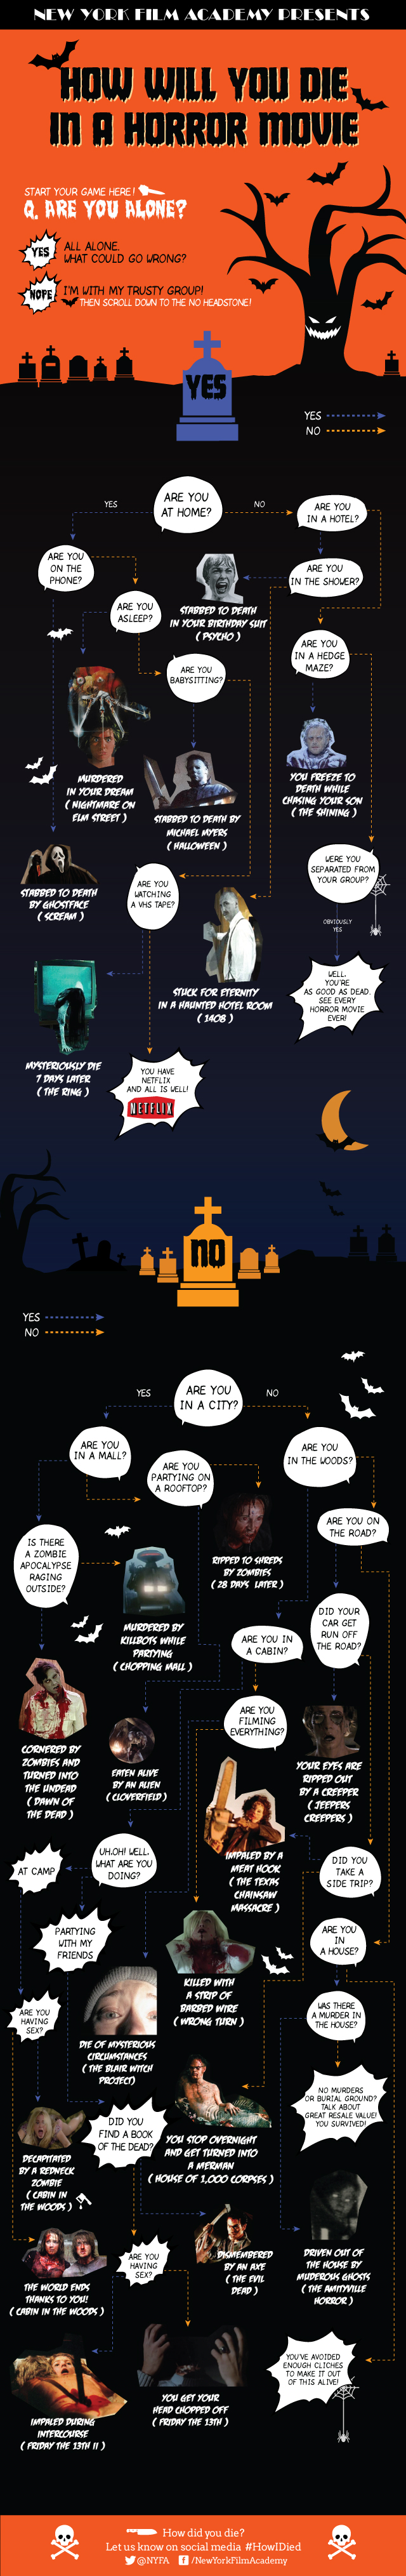 Learn how you will die in a horror movie